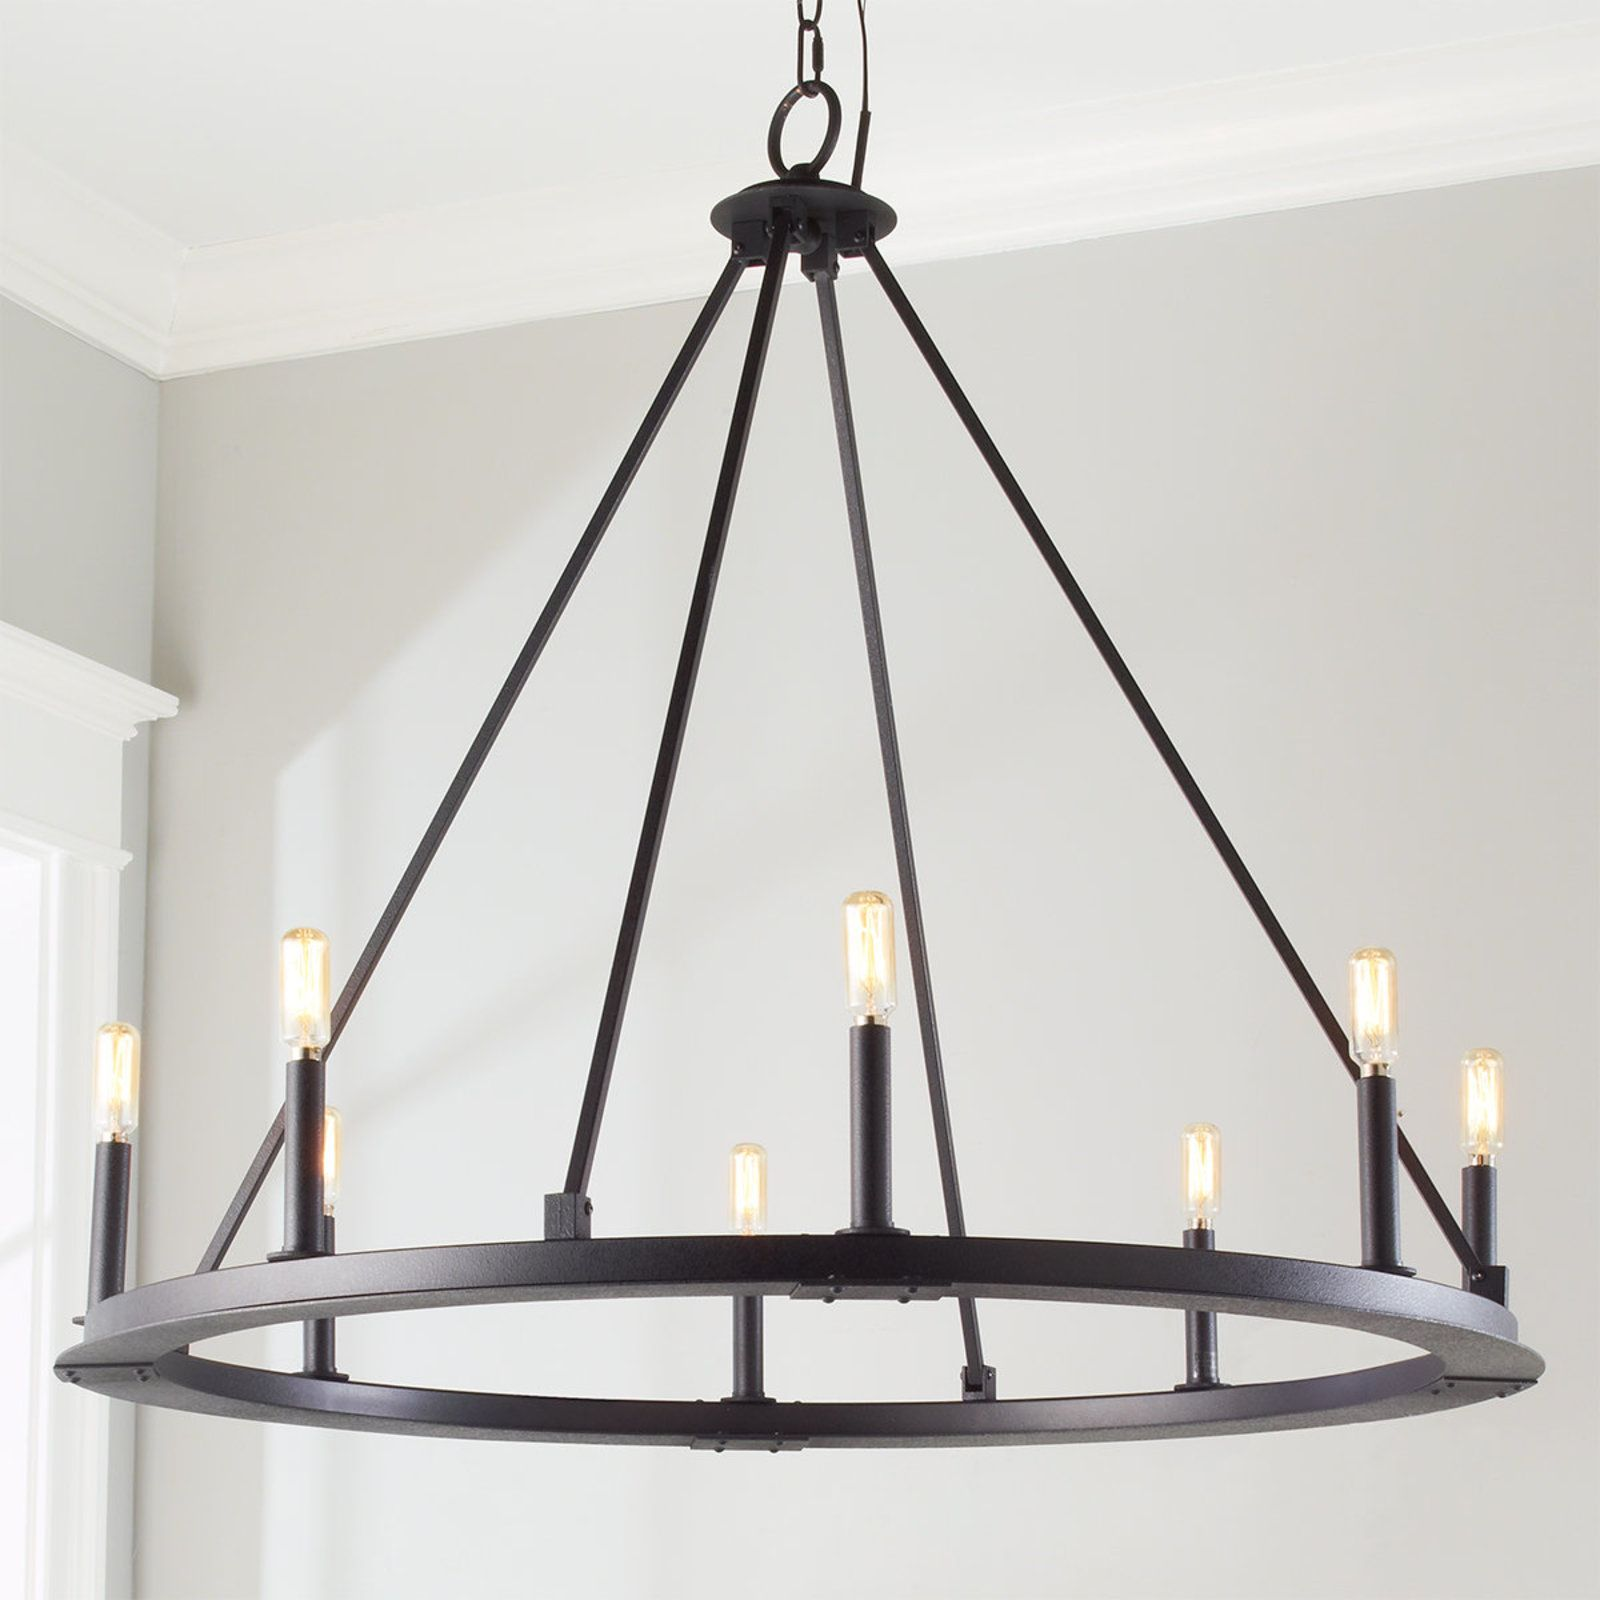 Minimalist Iron Ring Chandelier 8 Light Circular Chandelier Iron Chandeliers Minimalist Chandelier